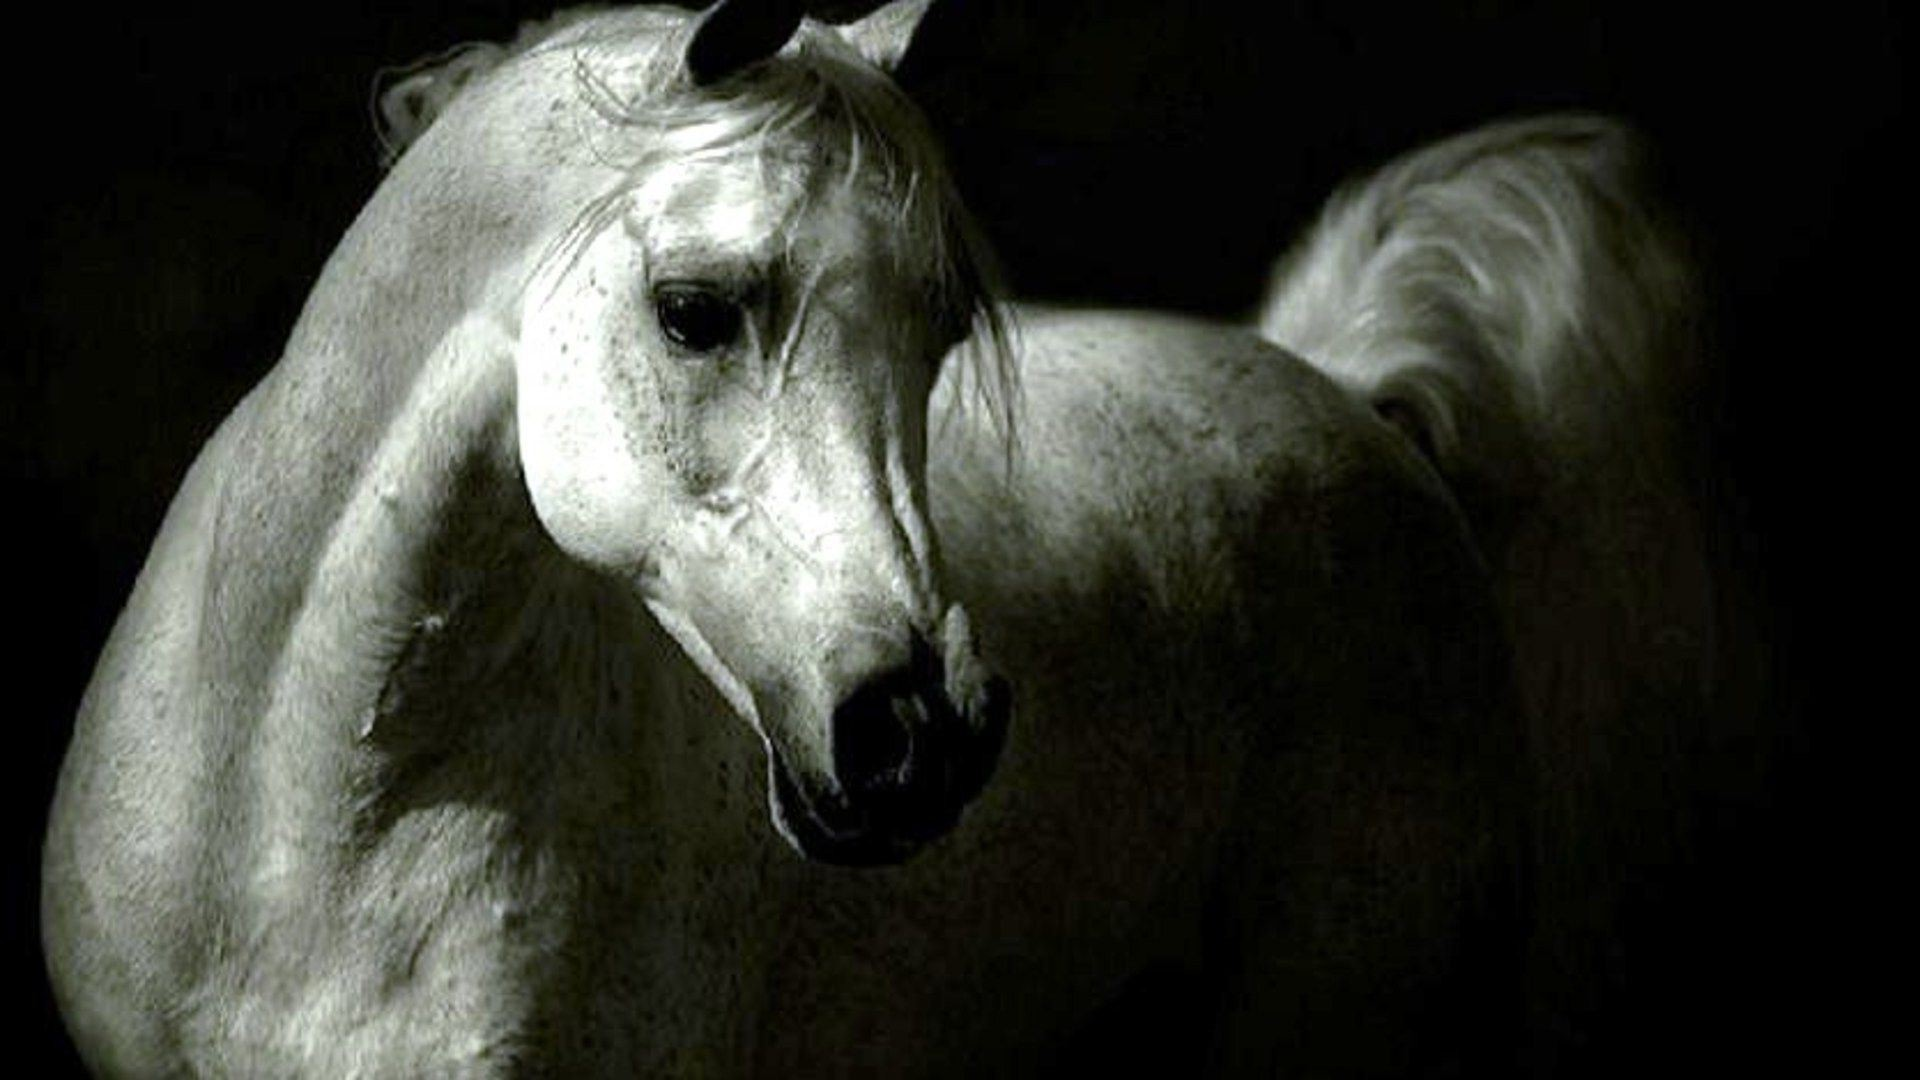 1920x1080 White Arabian Horse Photo White Arabian Arabian Horse Wallpaper Hd 1920x1080 Wallpaper Teahub Io